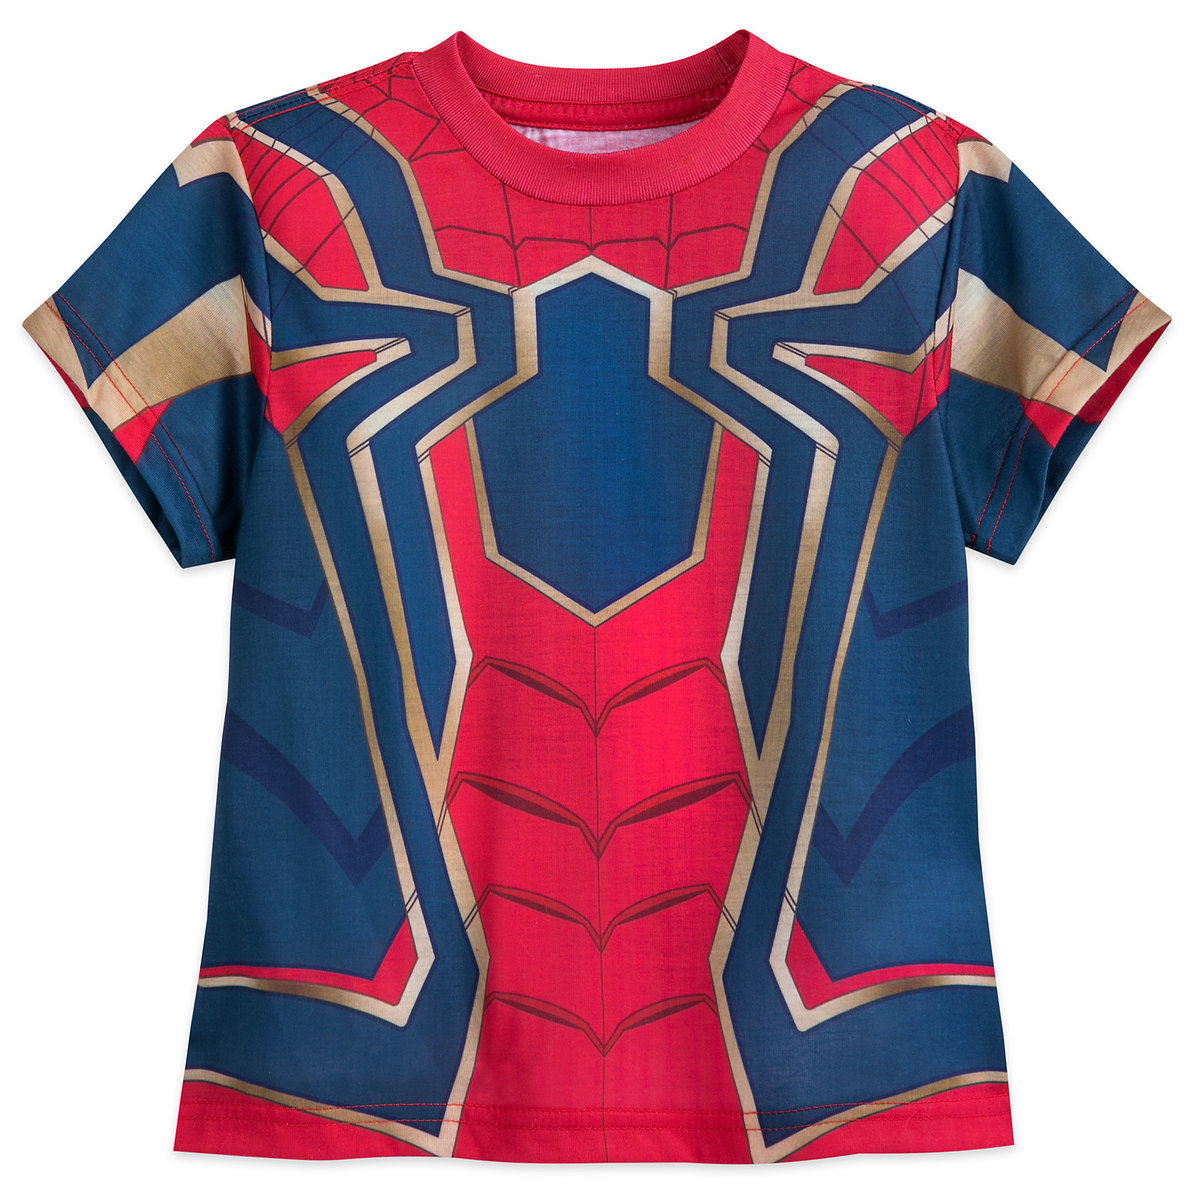 986c20ff8 Product Image of Iron Spider Costume T-Shirt for Boys - Marvel's Avengers:  Infinity